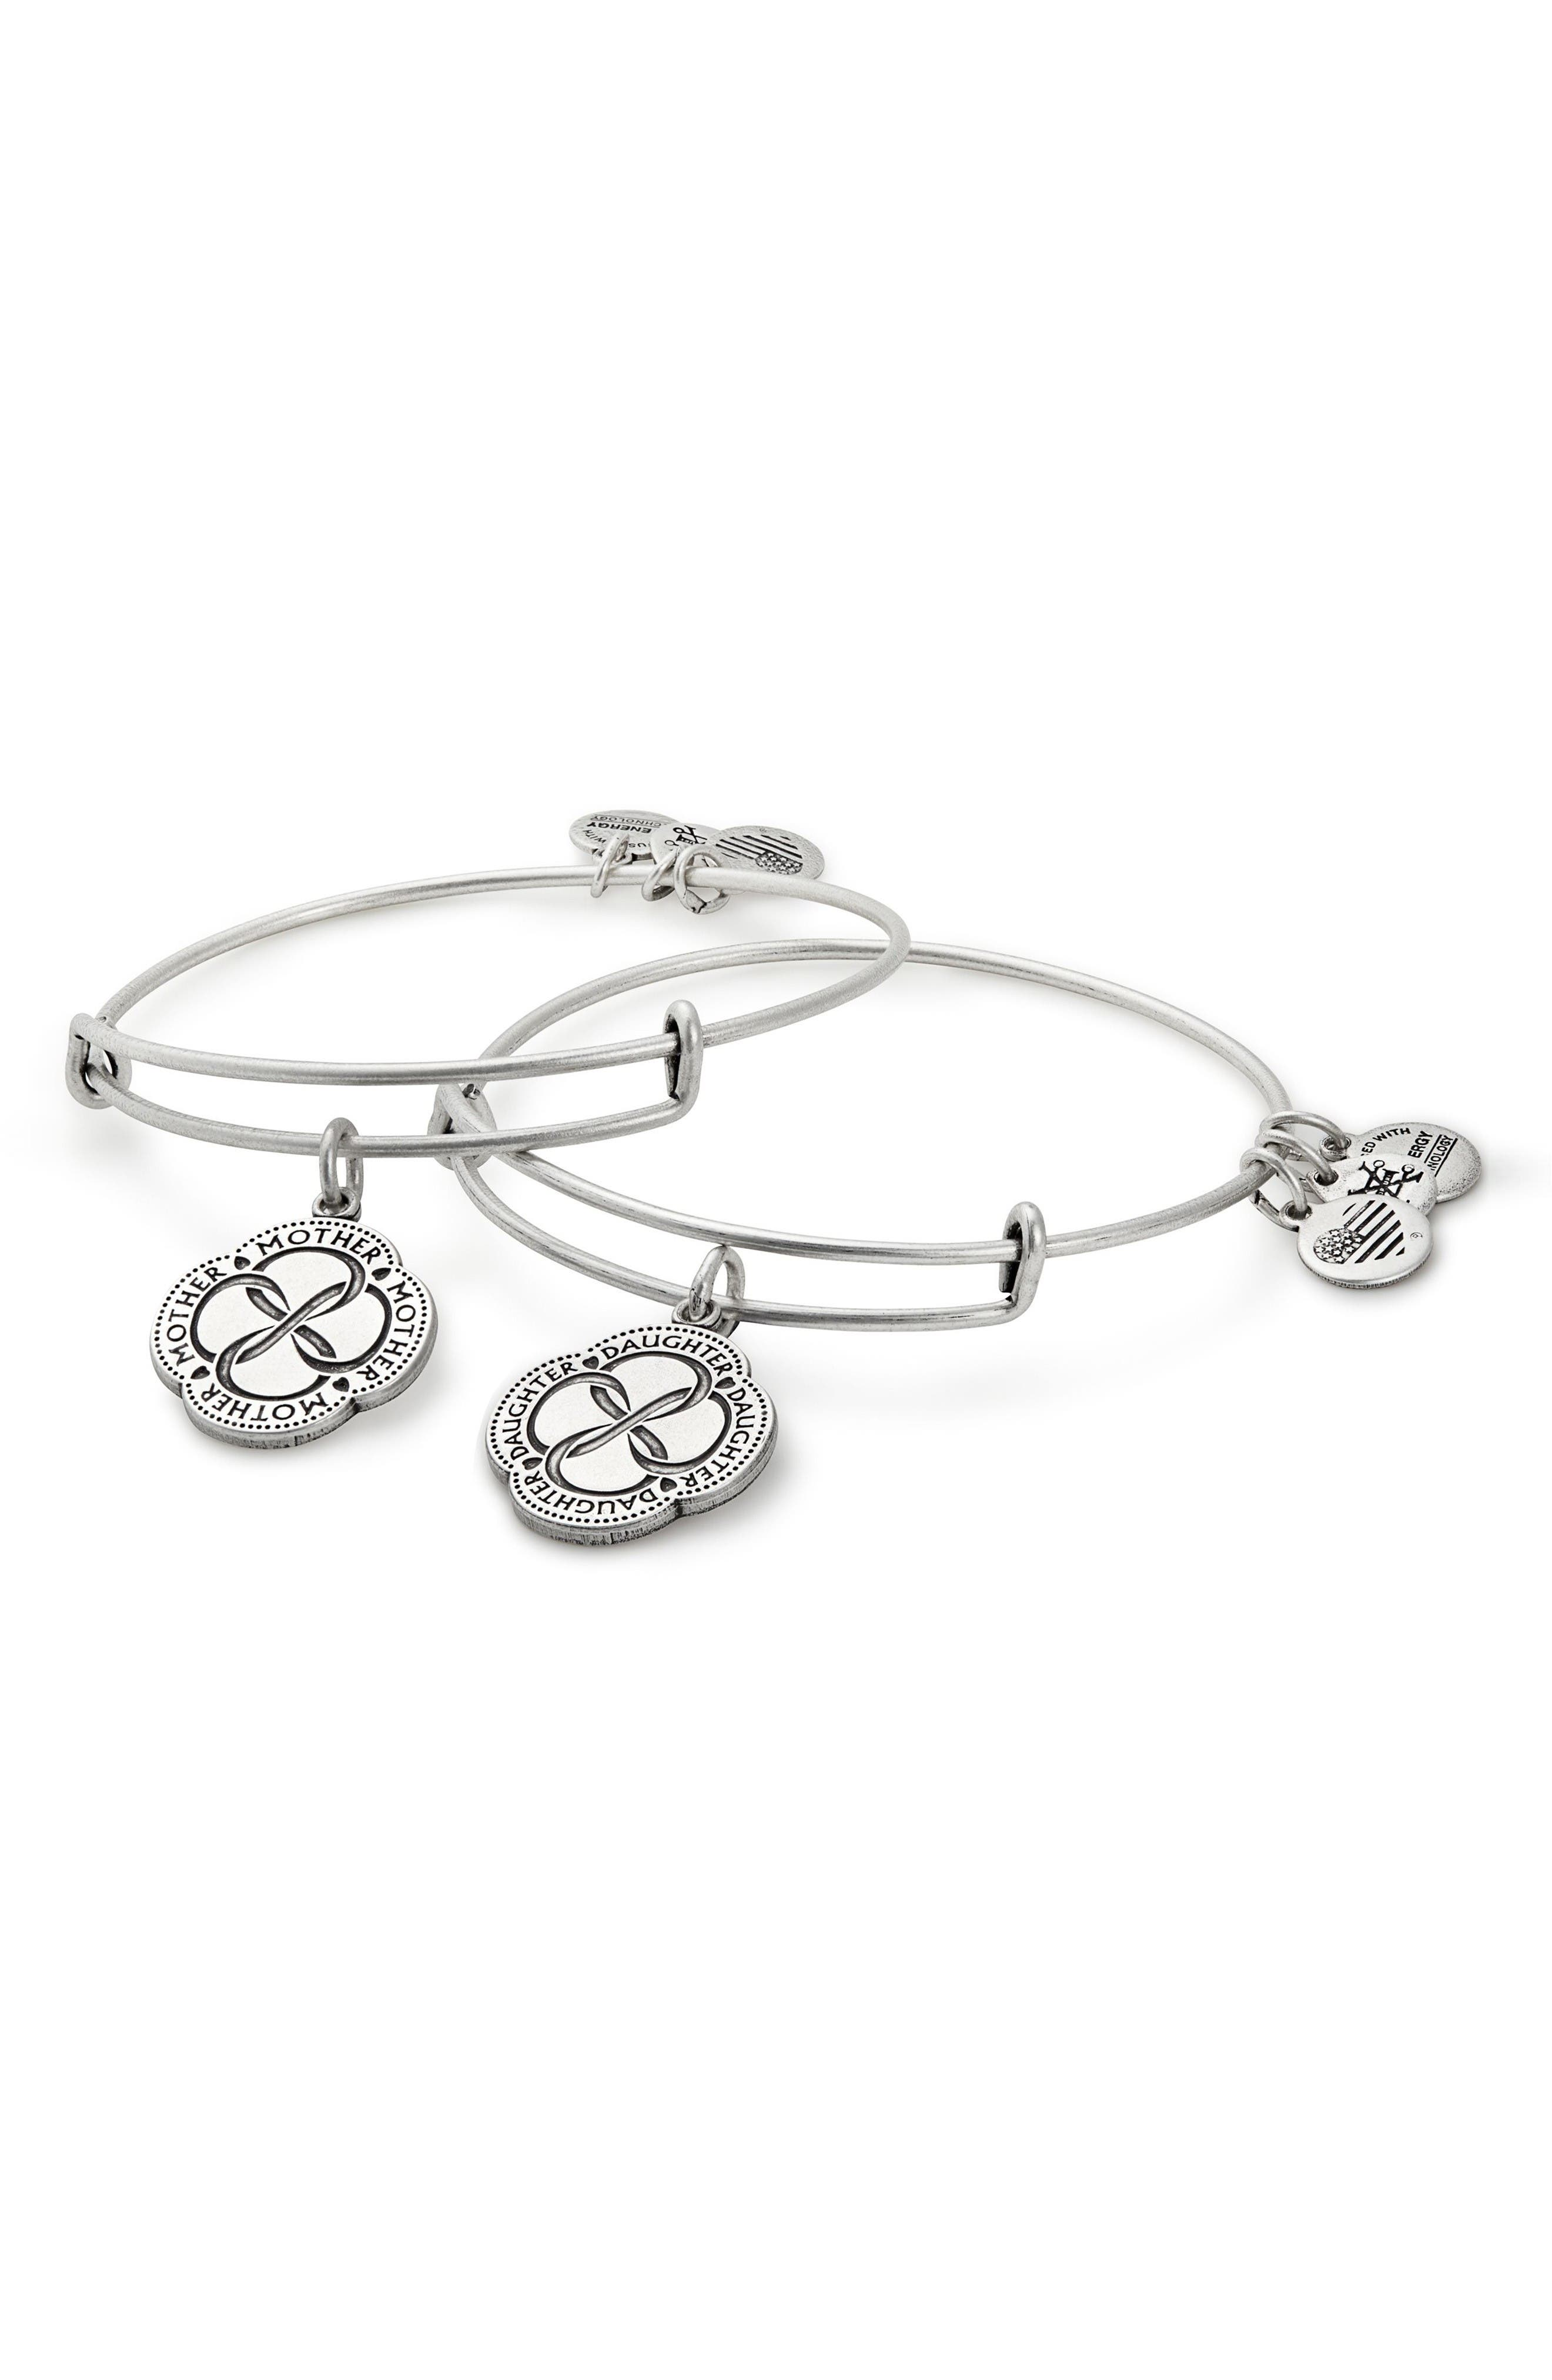 Infinite Connection Set of 2 Adjustable Wire Bangles,                         Main,                         color, Silver